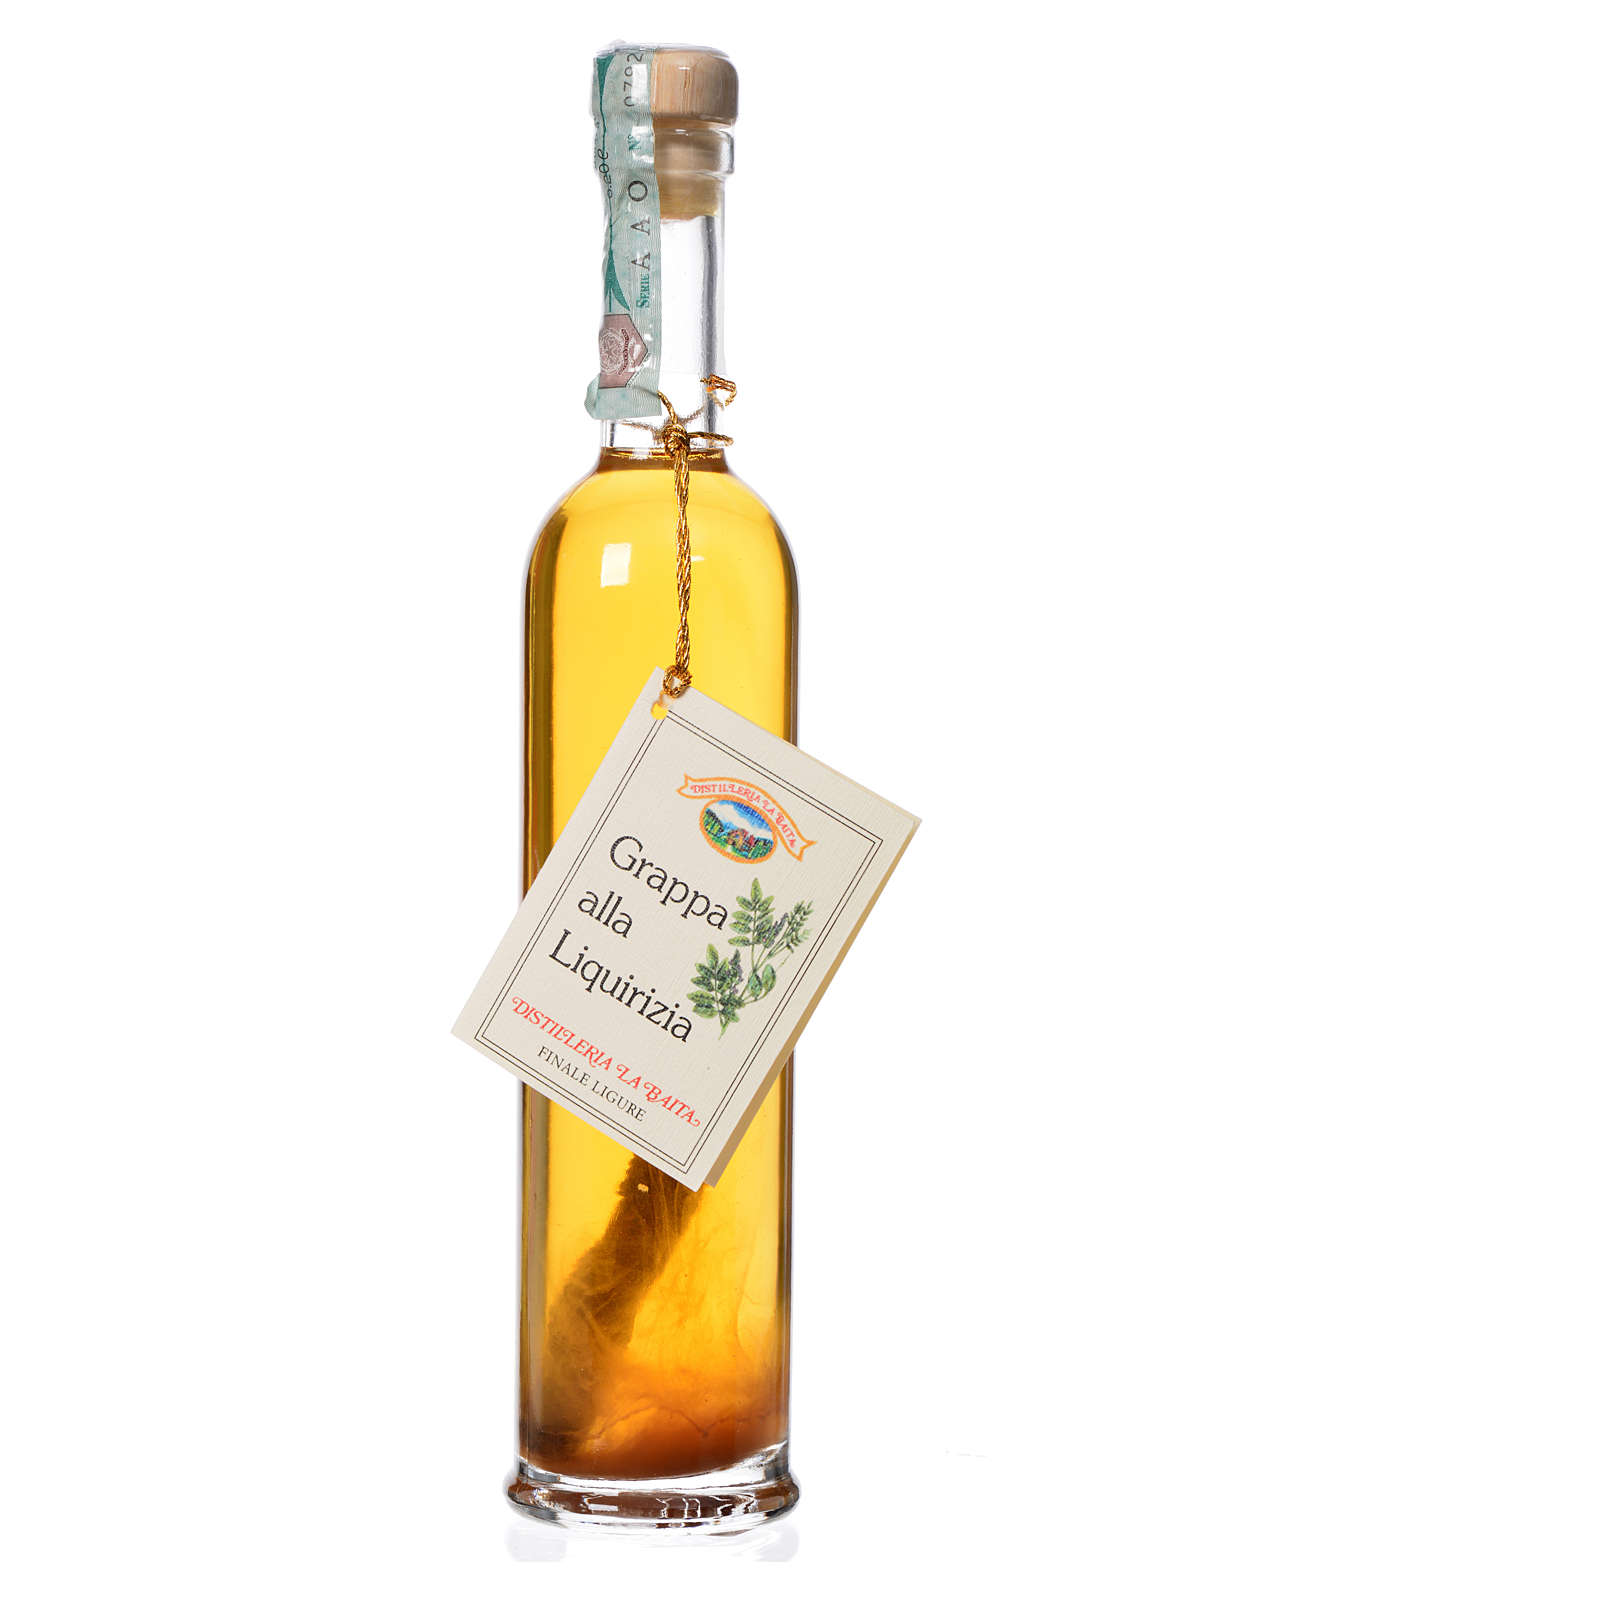 Grappa alla liquirizia 200 ml 3